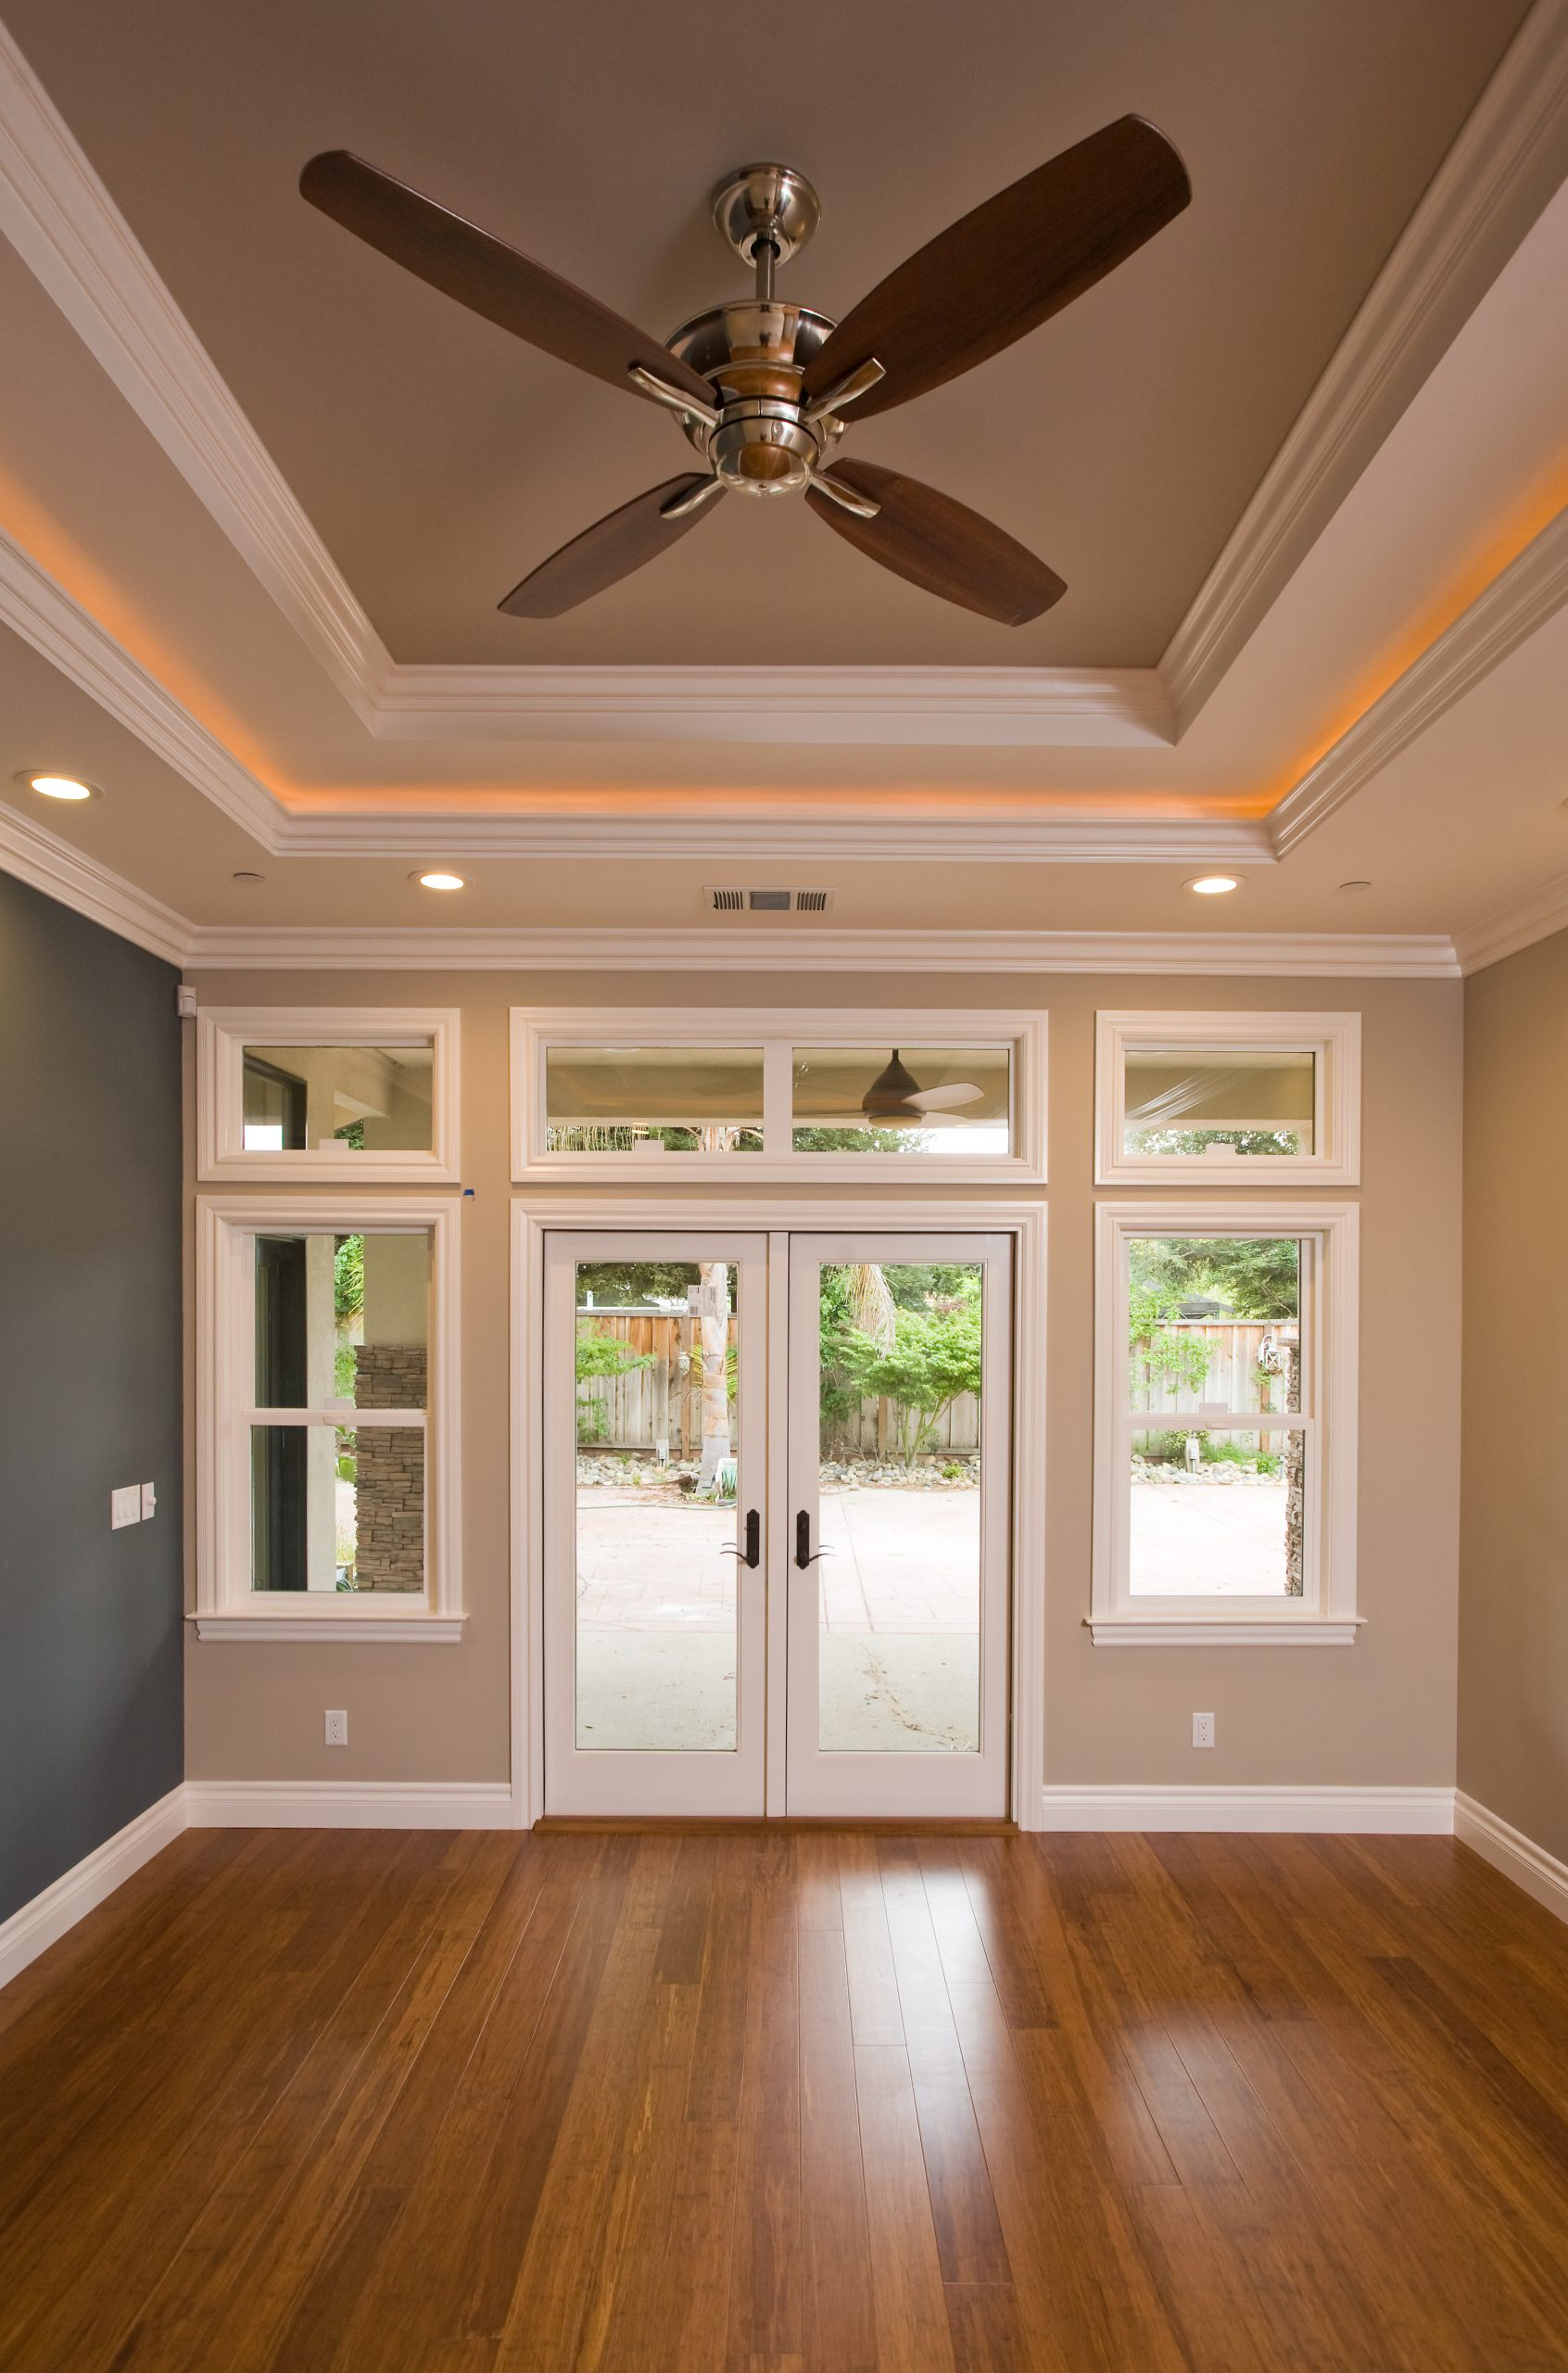 A living room with hardwood floors and recessed ceilings.